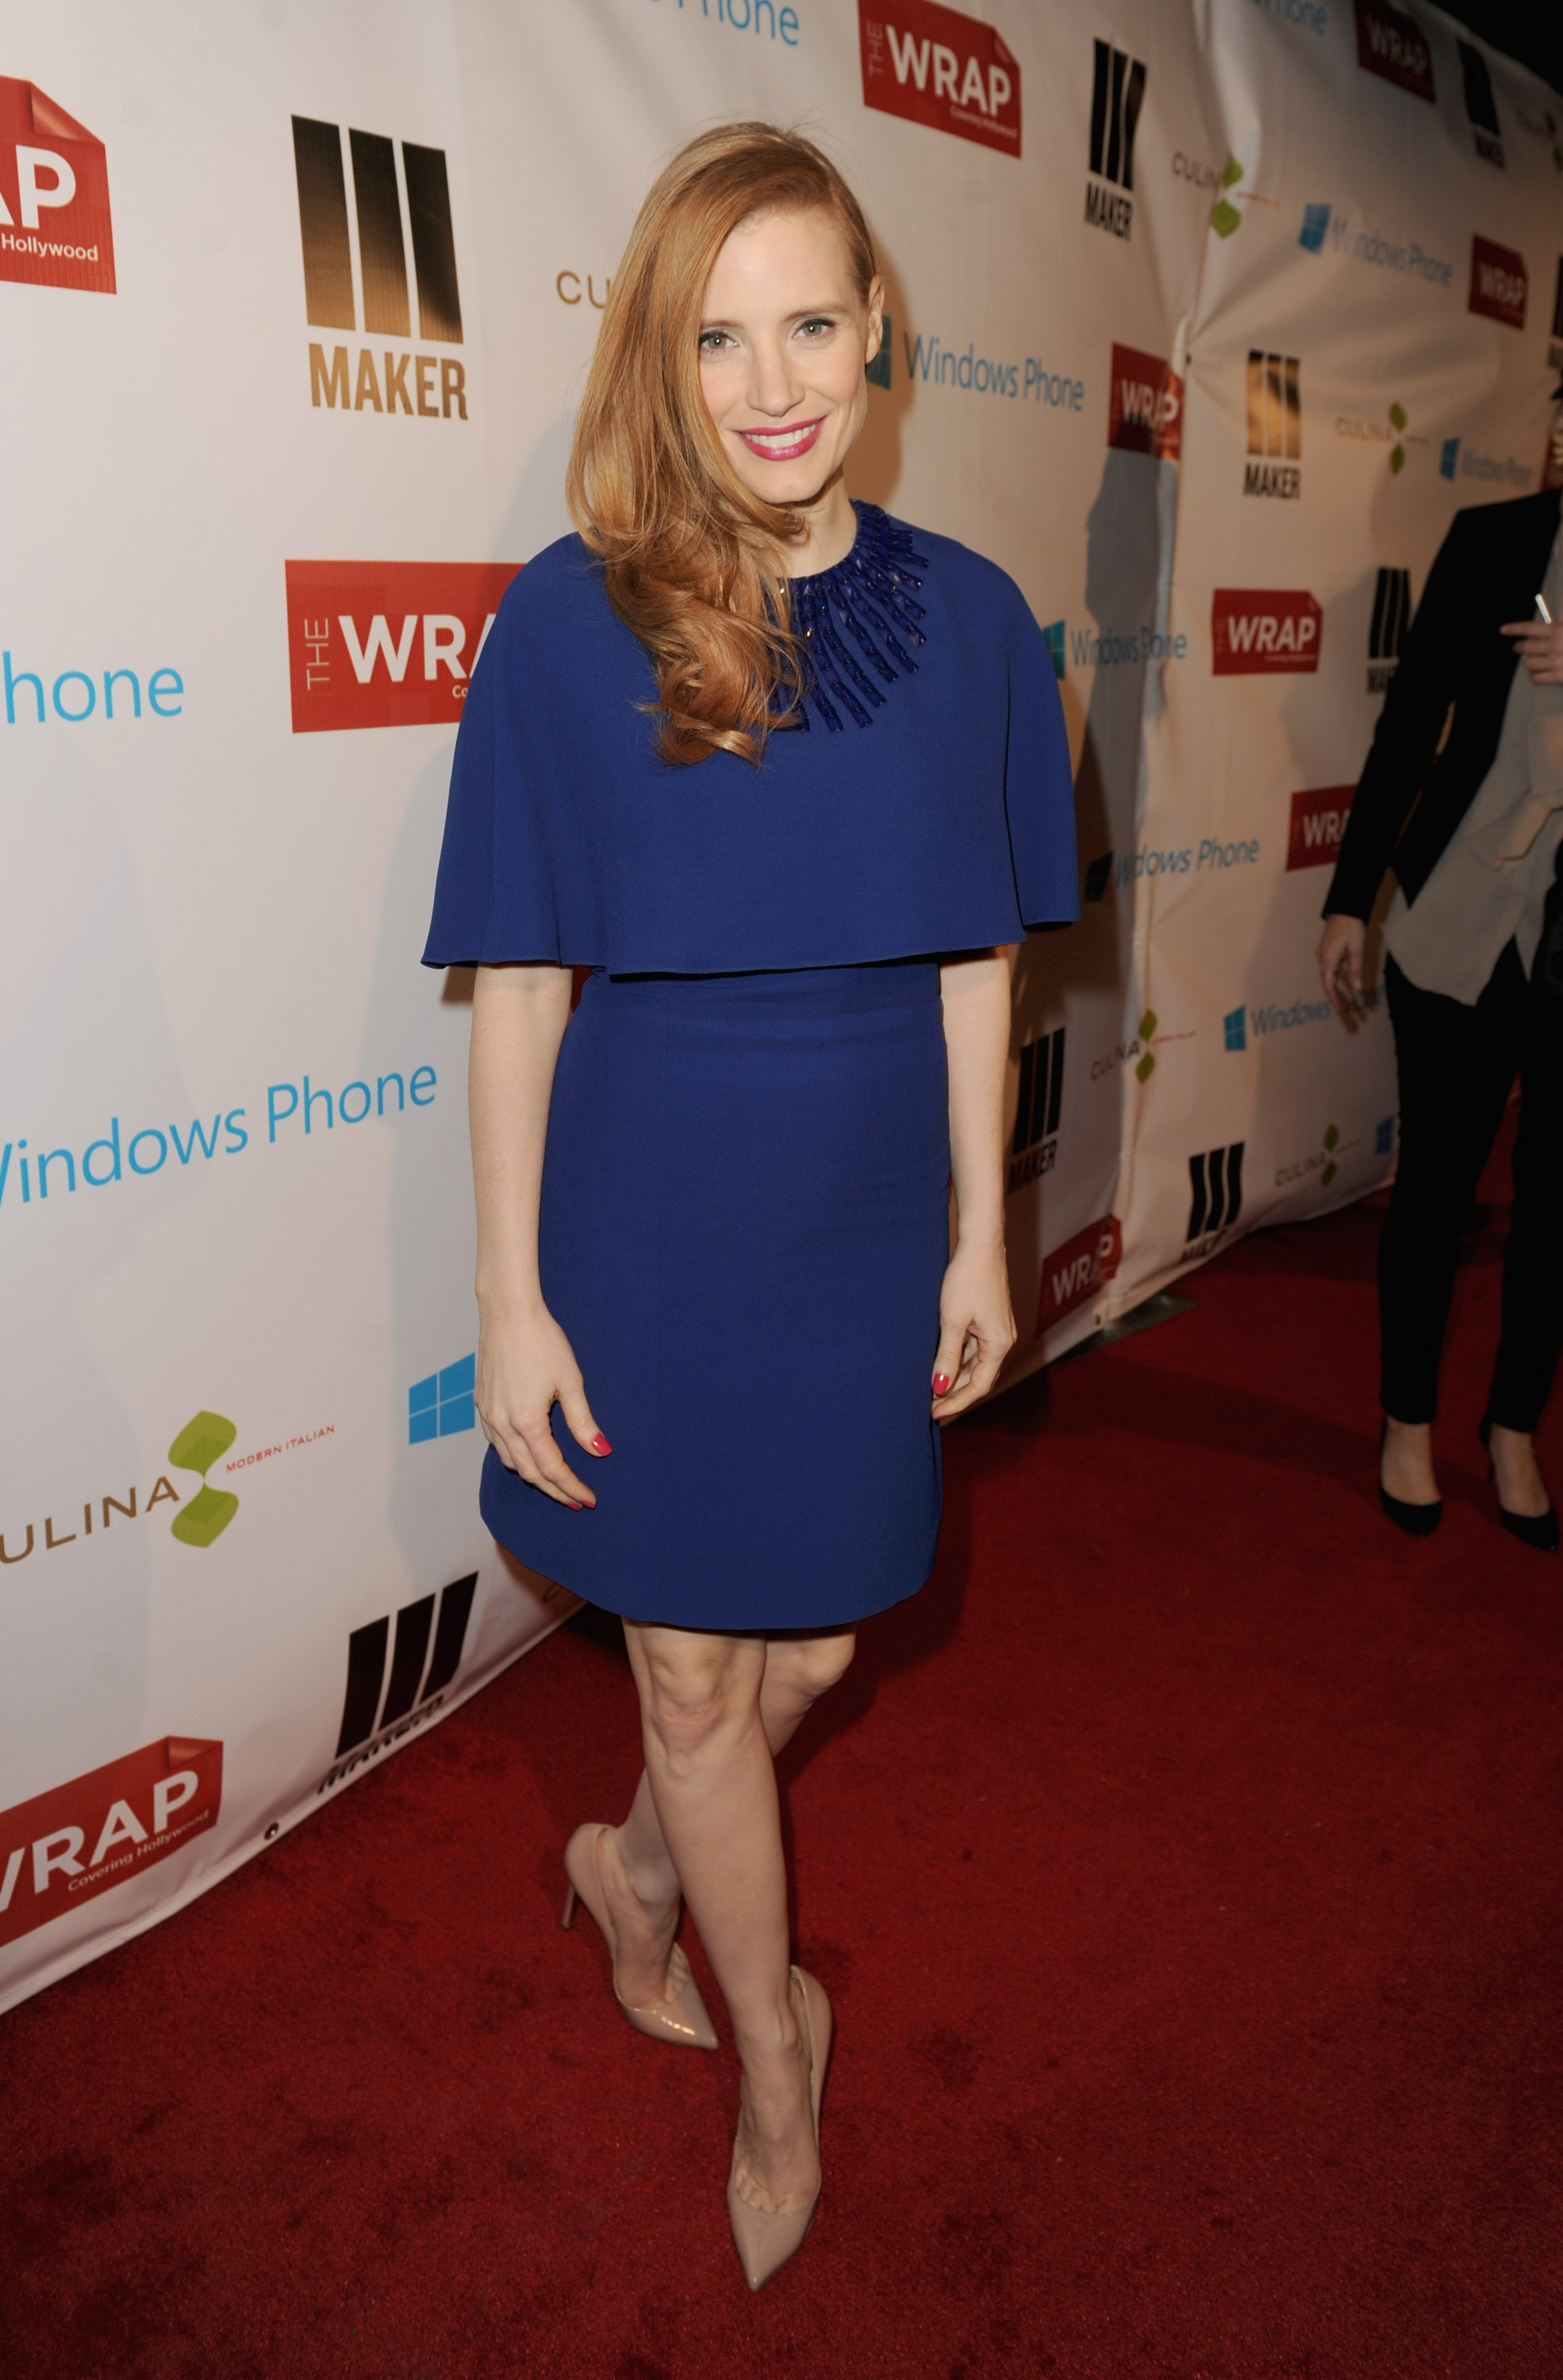 Jessica Chastain looked lovely in a blue dress at TheWrap's party in LA on Wednesday.